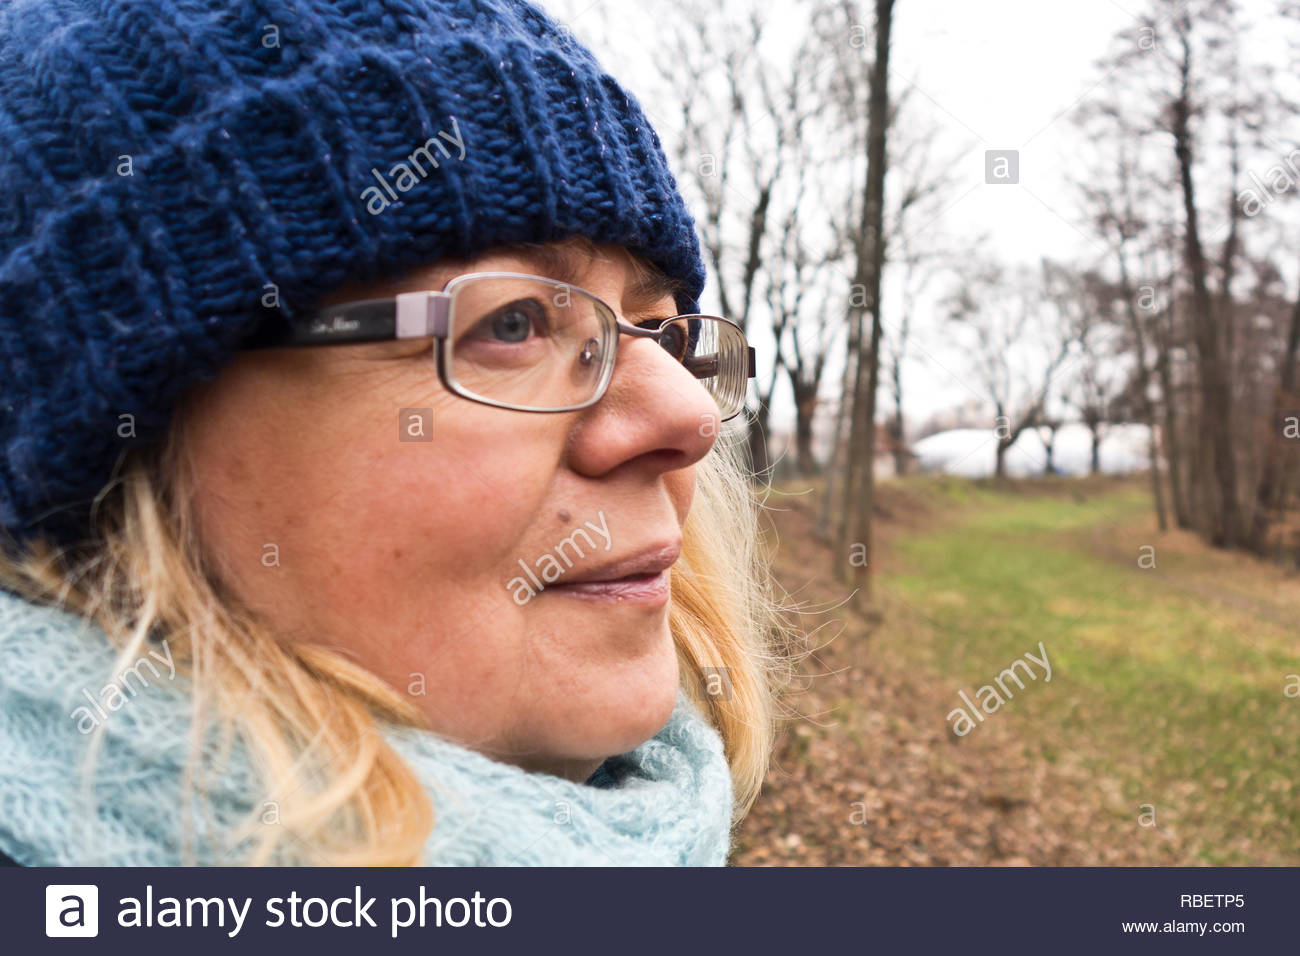 woman in her fifty looking ahead in a winter nature landscape - Stock Image